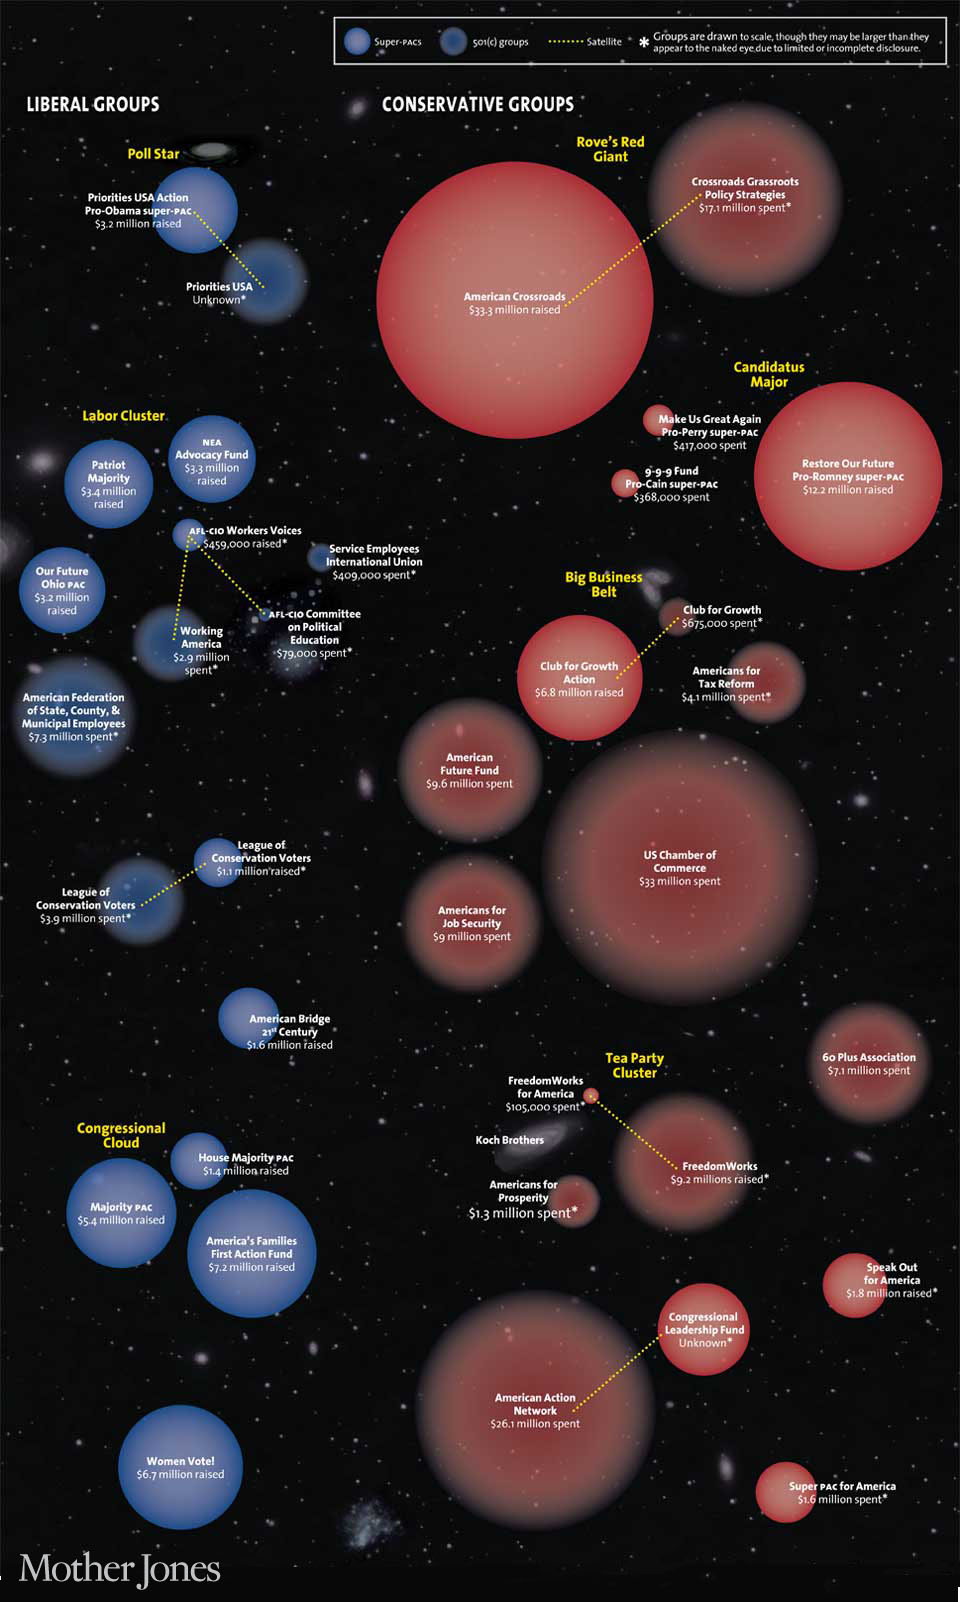 PAC, Liberal Groups, Conservative Groups: Stars, Clusters, Belts, and Clouds